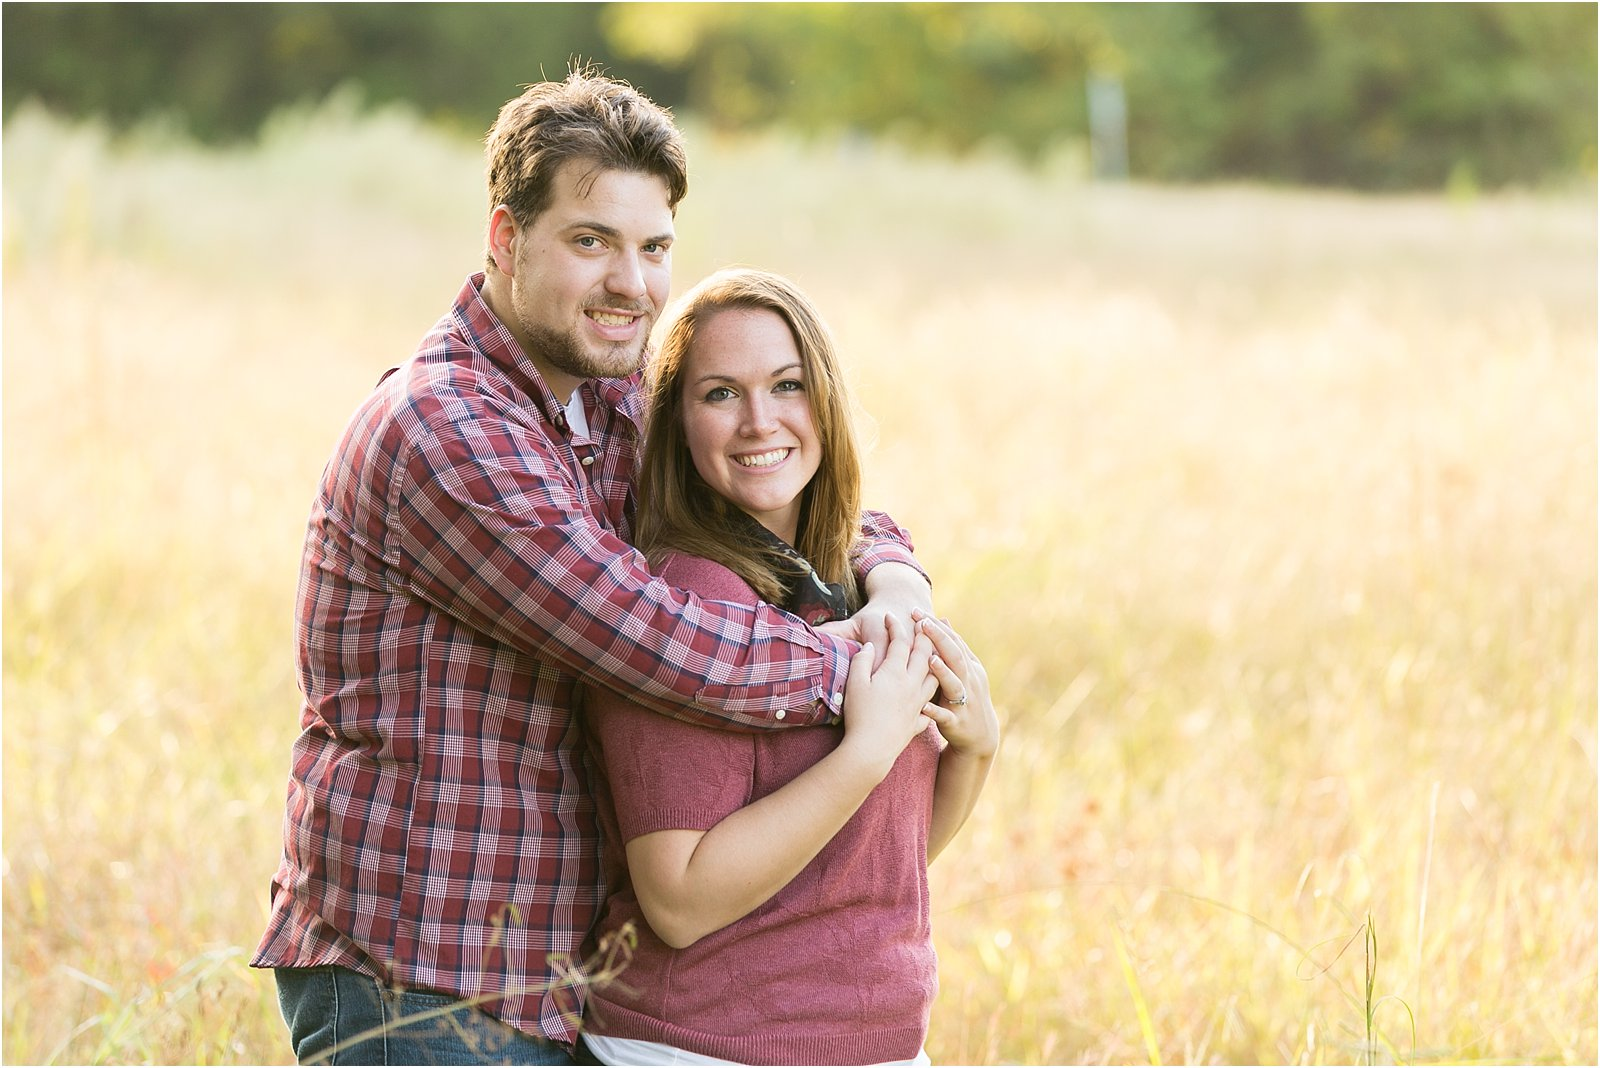 jessica_ryan_photography_pumpkin_patch_engagement_portraits_fall_october_engagements_virginia_beach_chesapeake_0299